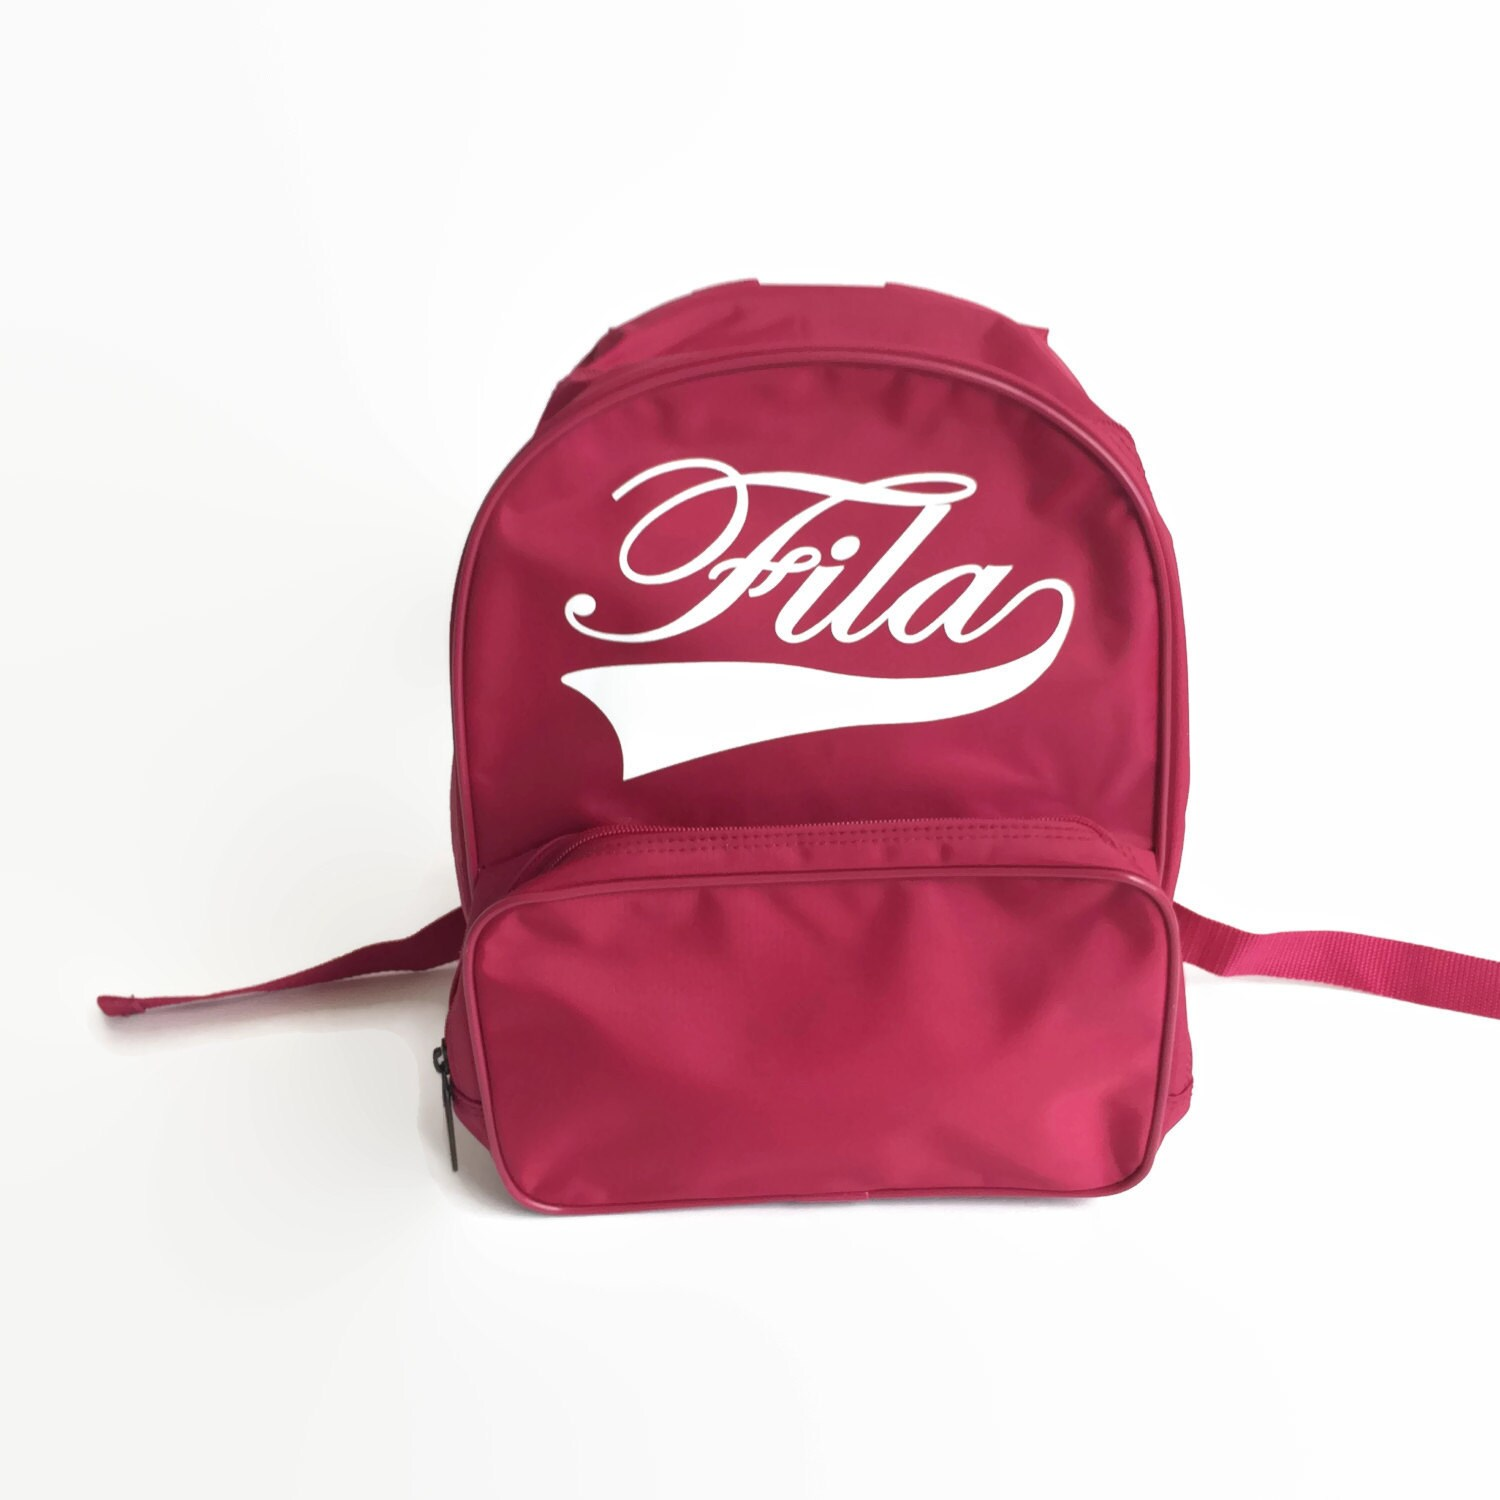 90 S Fila Small Backpack Purse